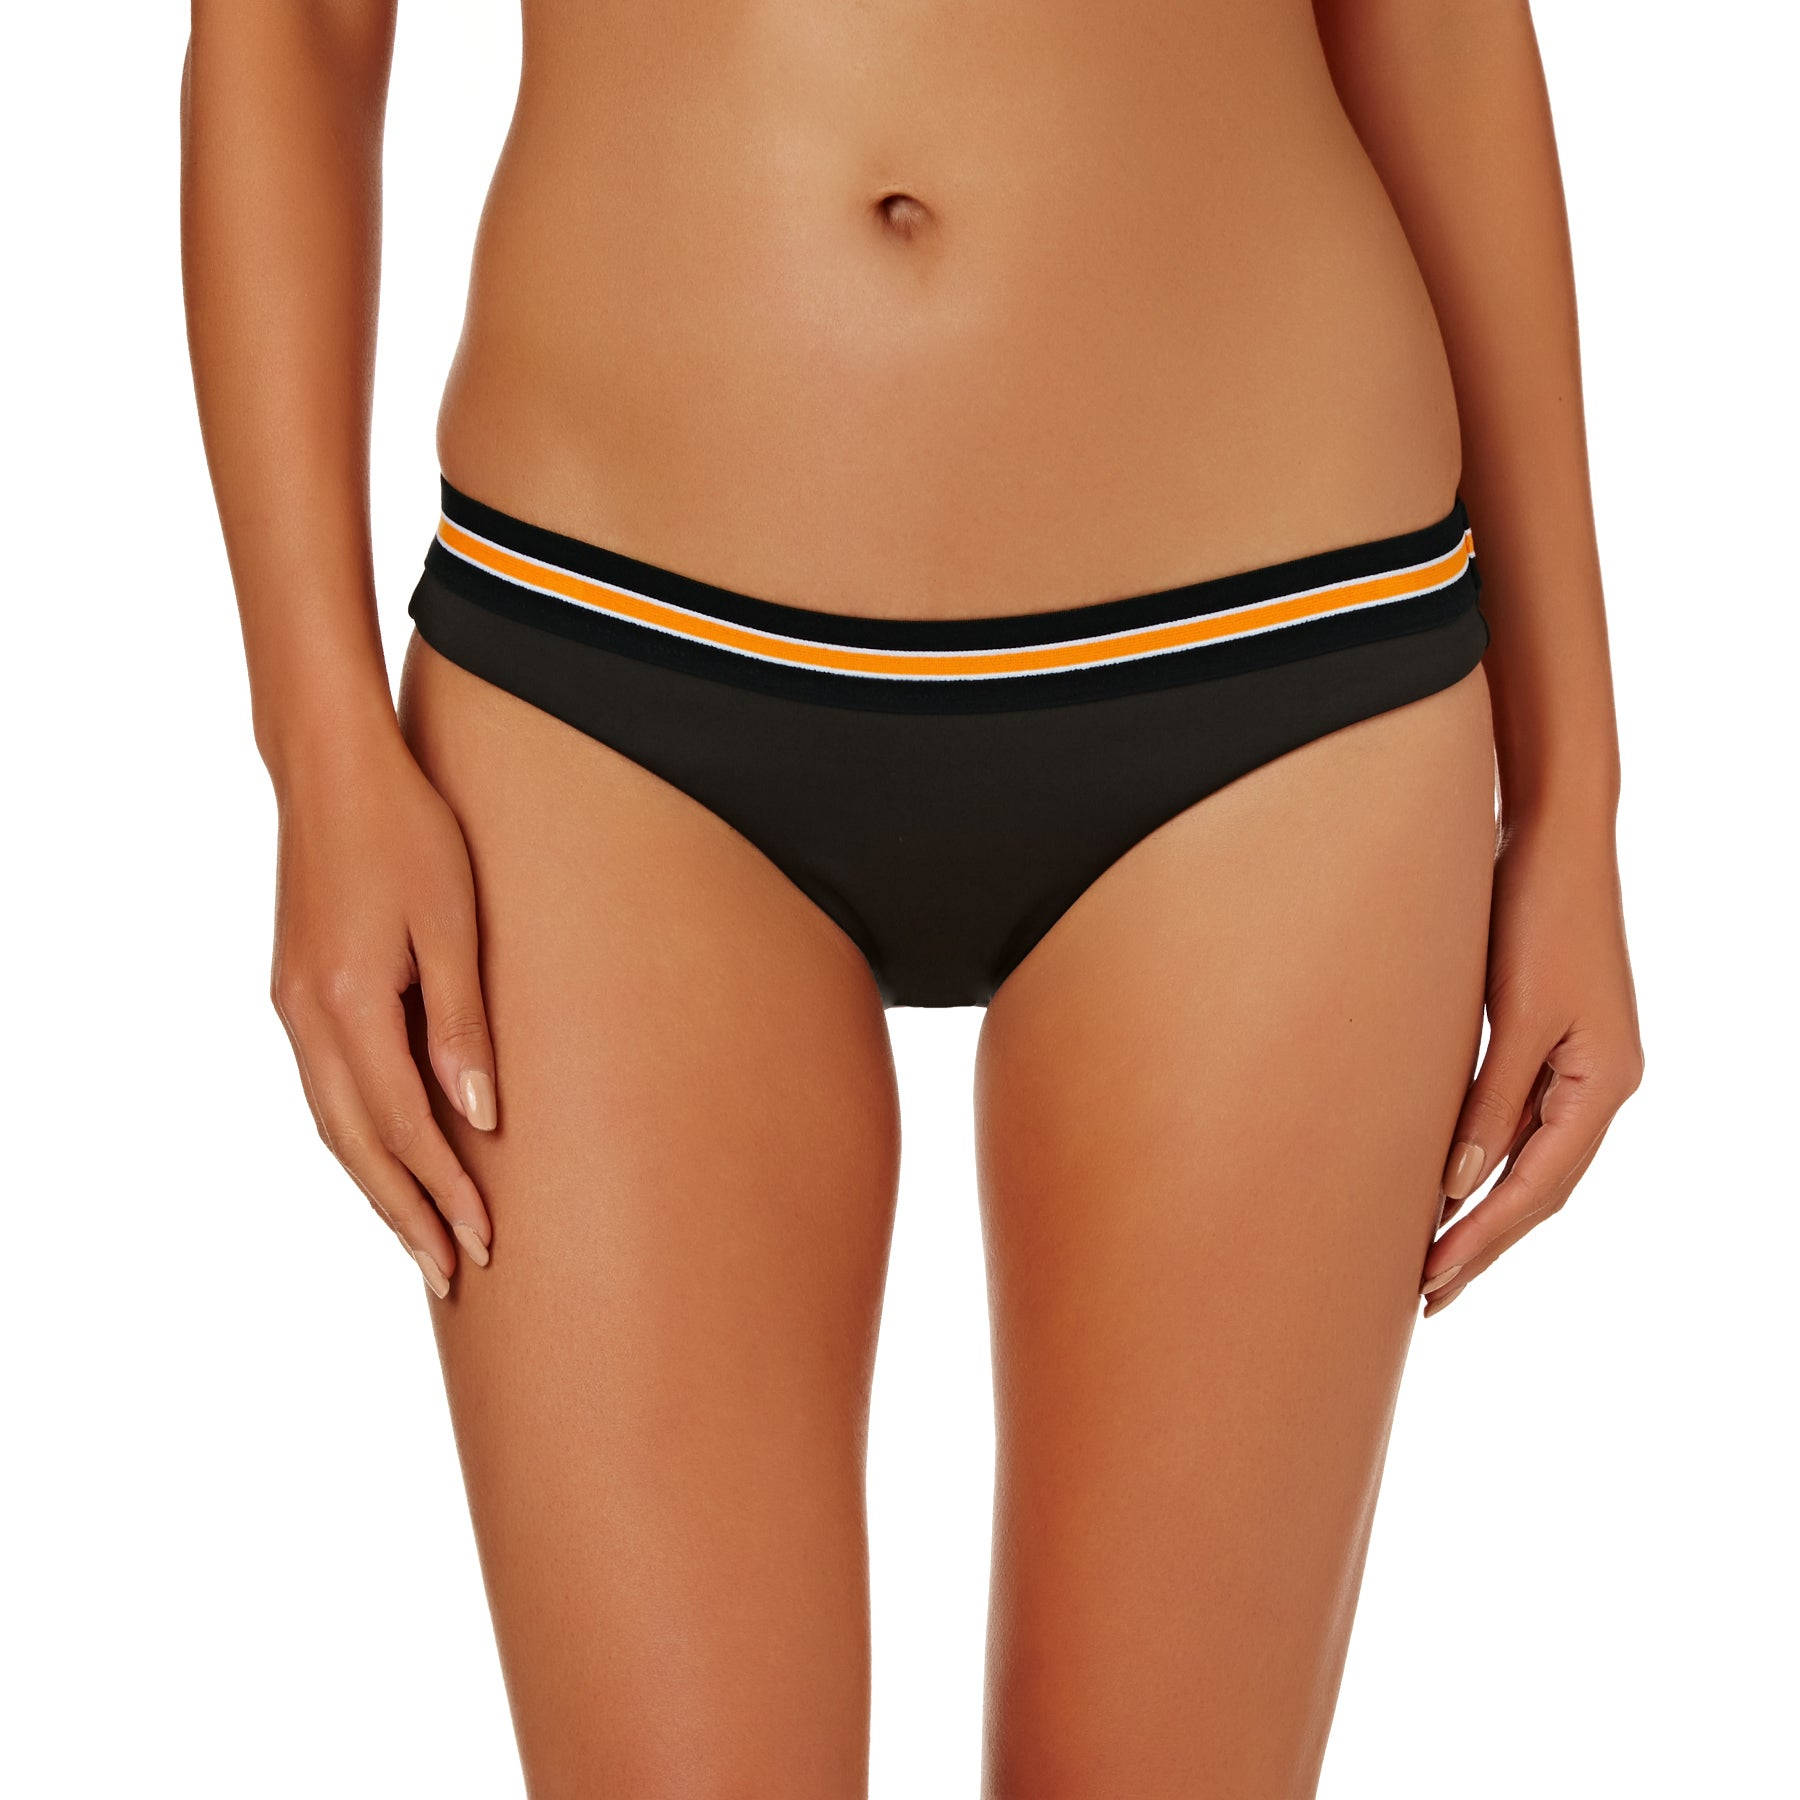 Rip Curl Mirage Ultimate Cheeky Pant Ladies Bikini Bottoms